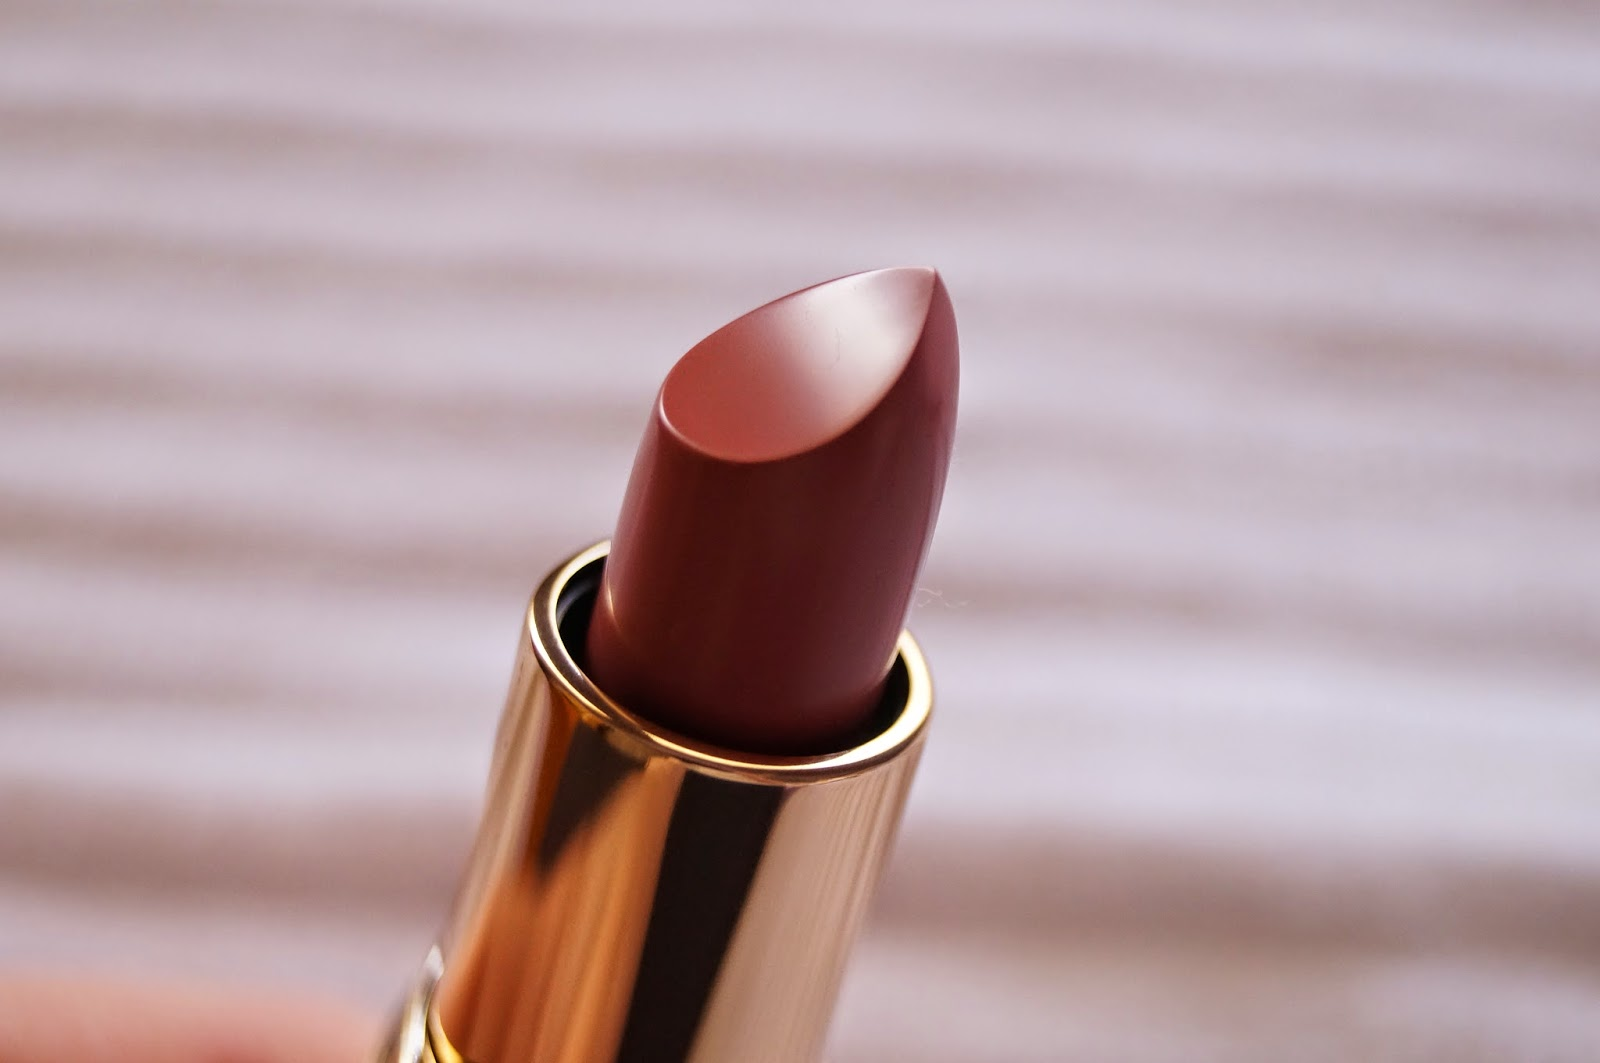 Bobbi Brown Rouge A Levres Lipstick in Pale Pink